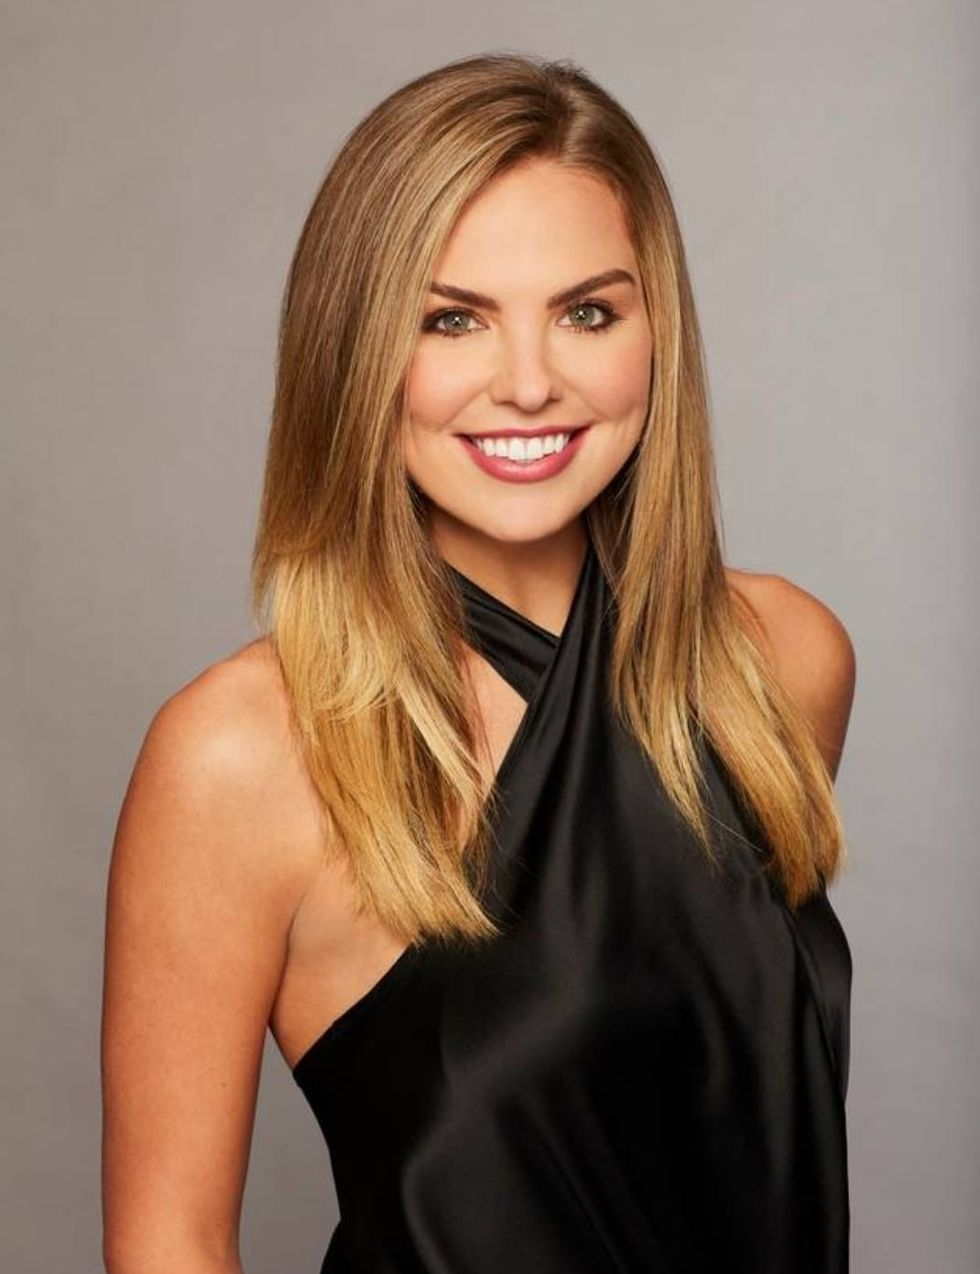 Why you should be excited for Hannah B. as the next Bachelorette!!!